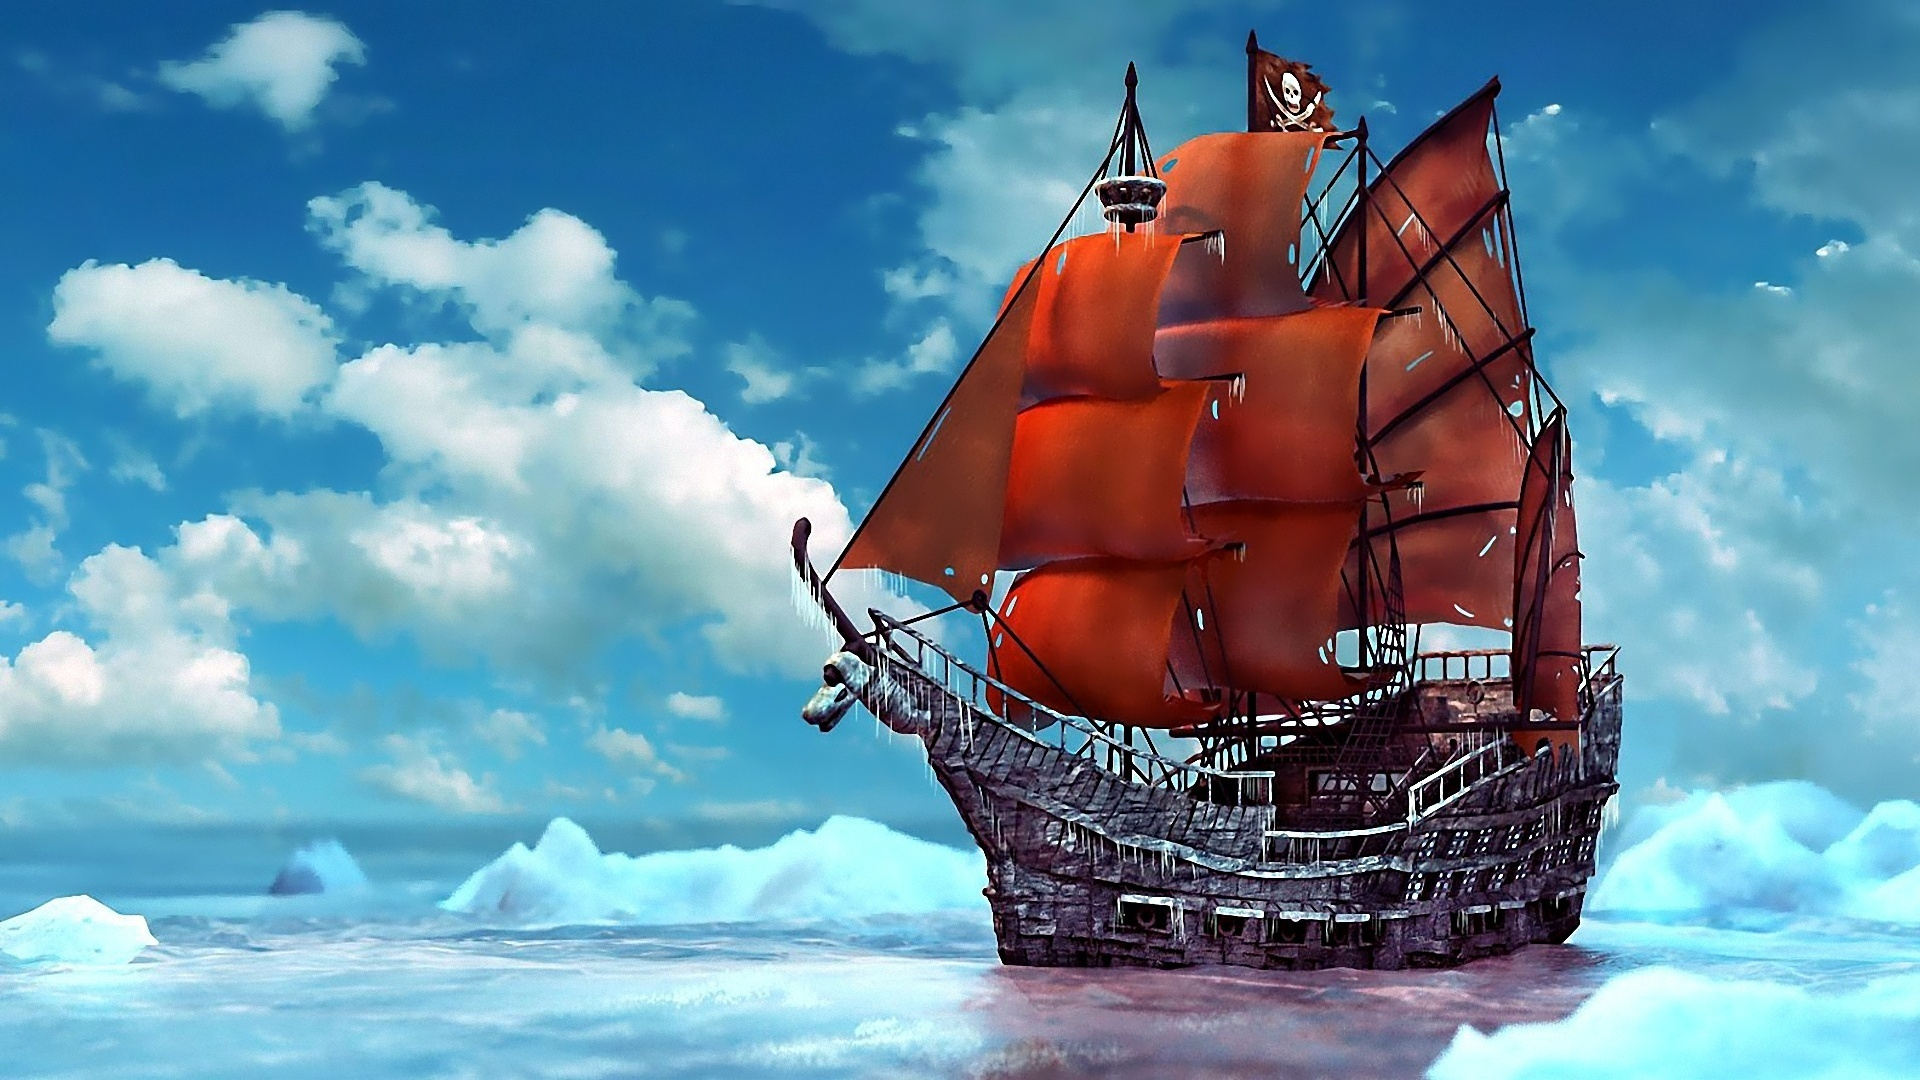 pirate ship computer wallpapers - photo #26